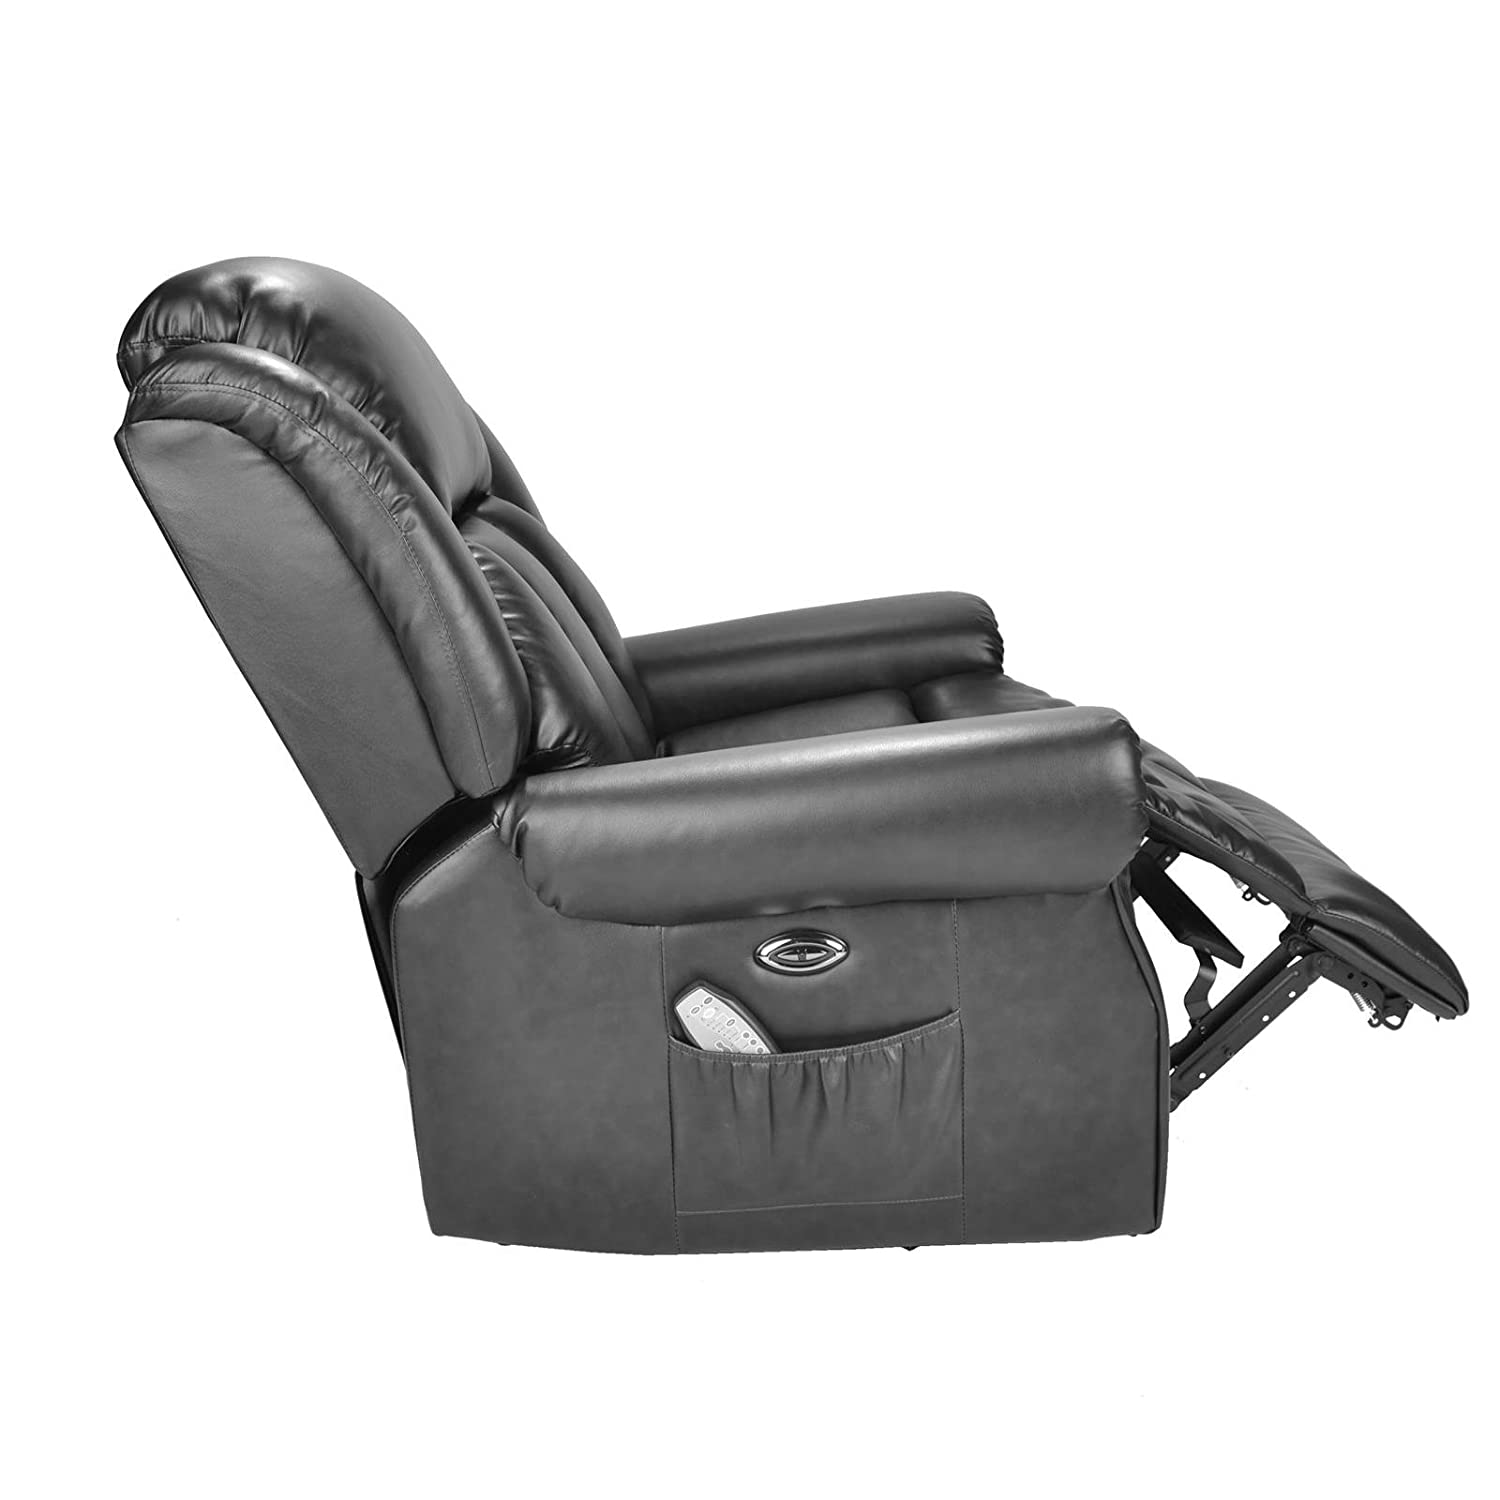 Hainworth Leather Electric powered recliner chair with heat and